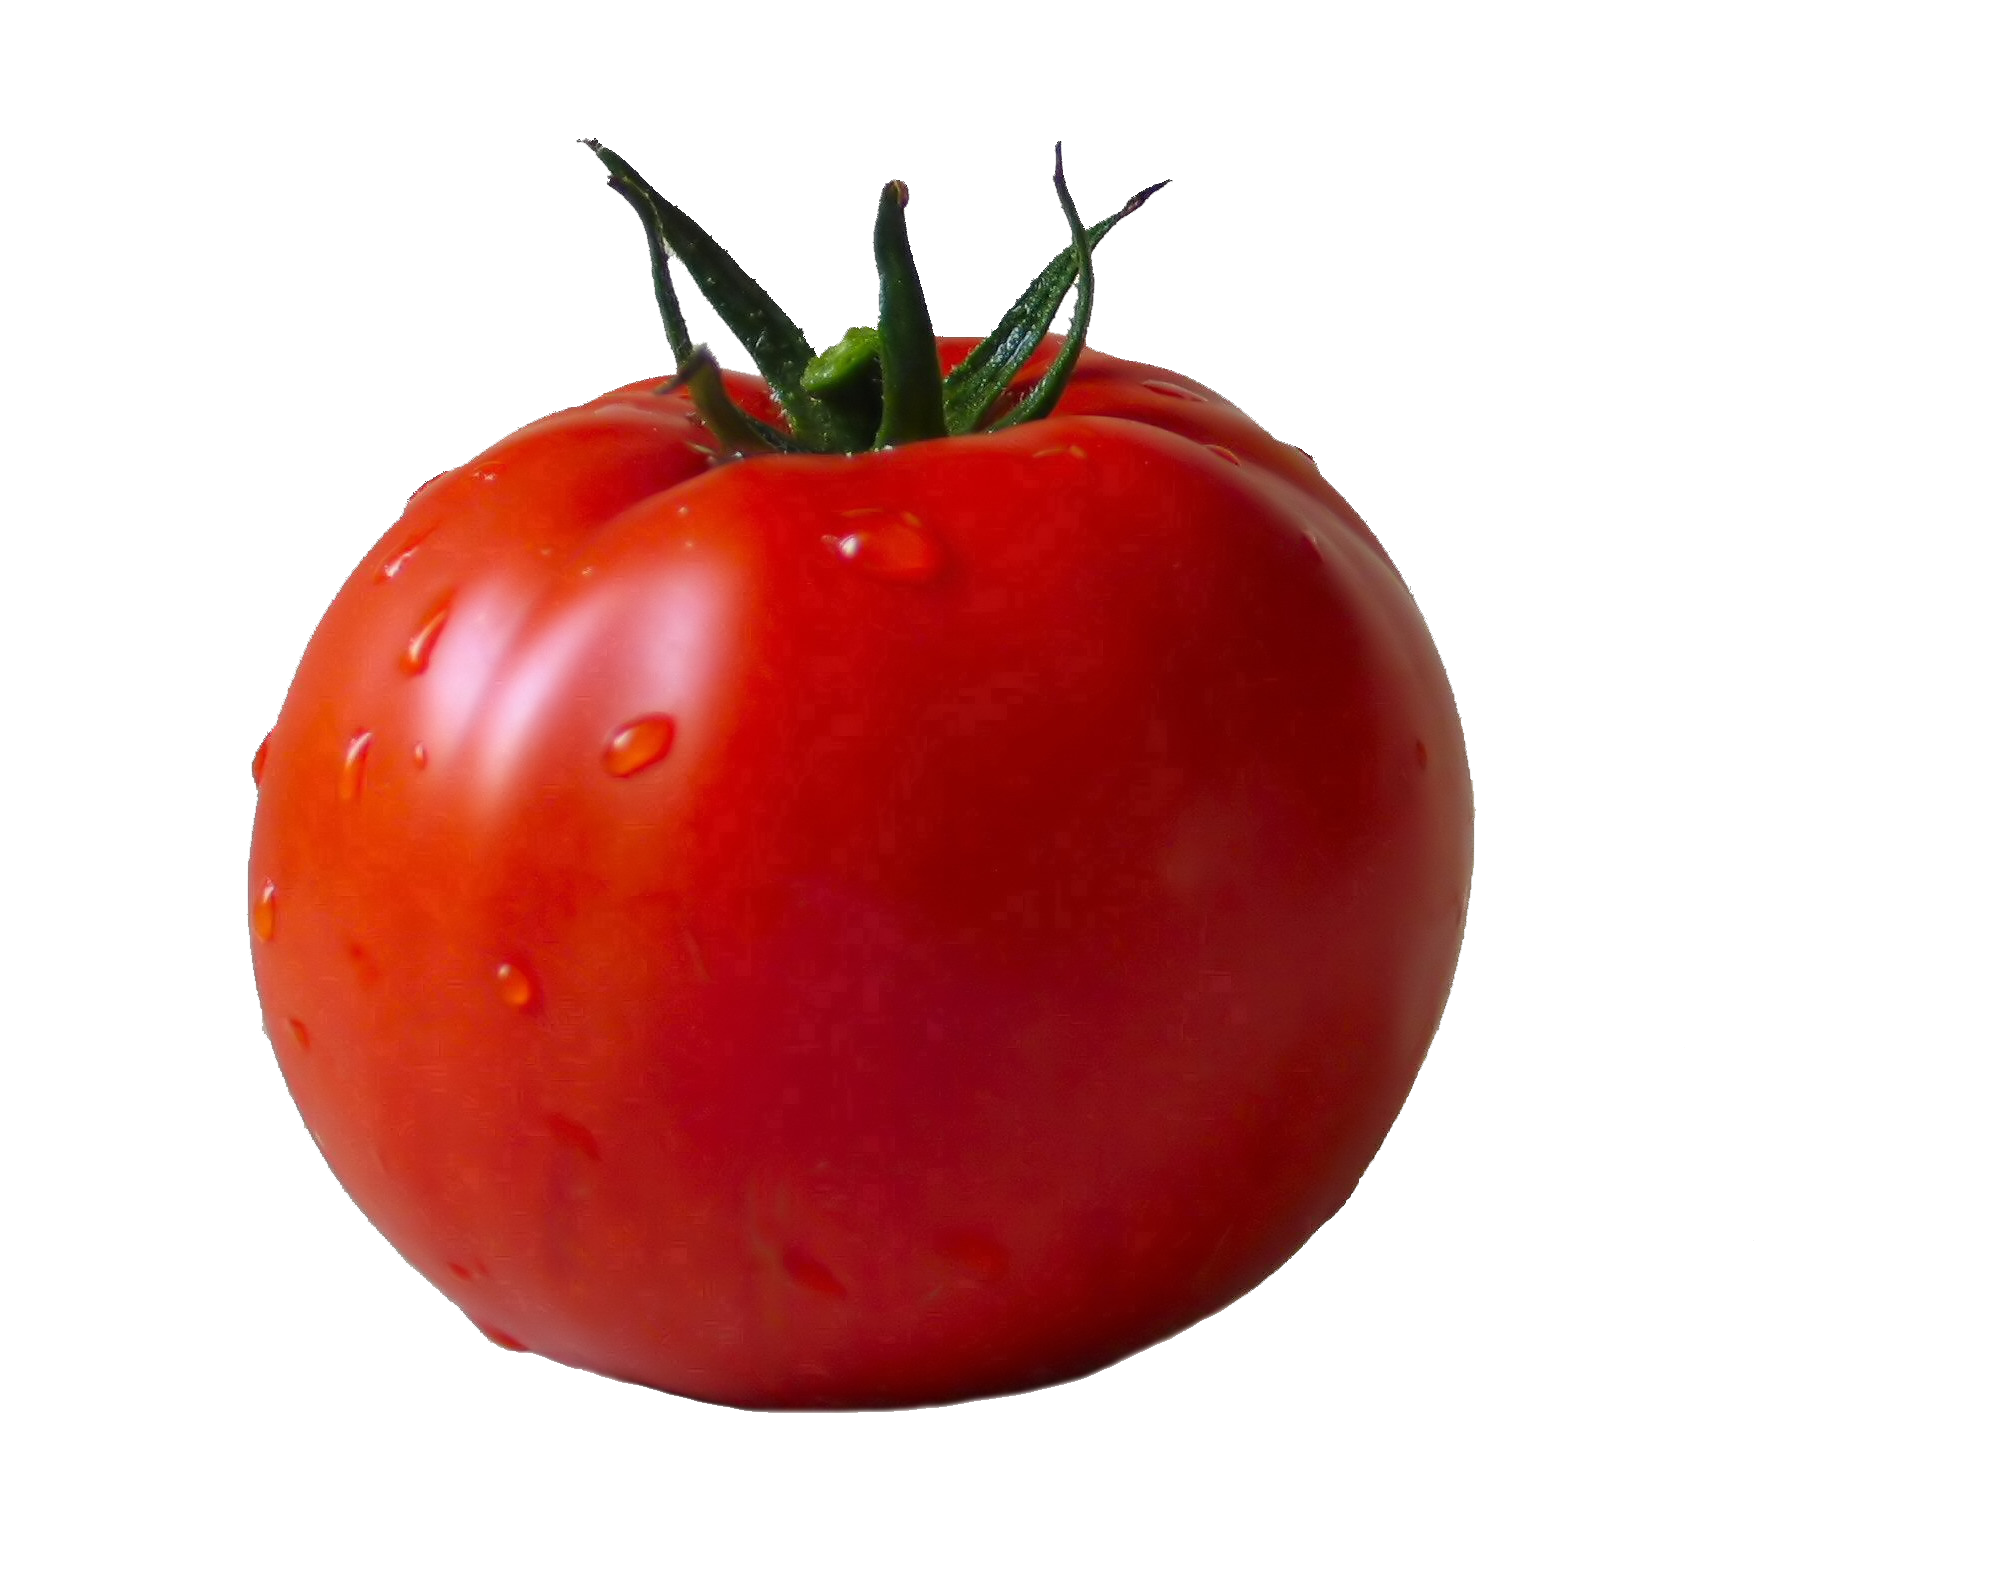 PNG Tomato - 57147